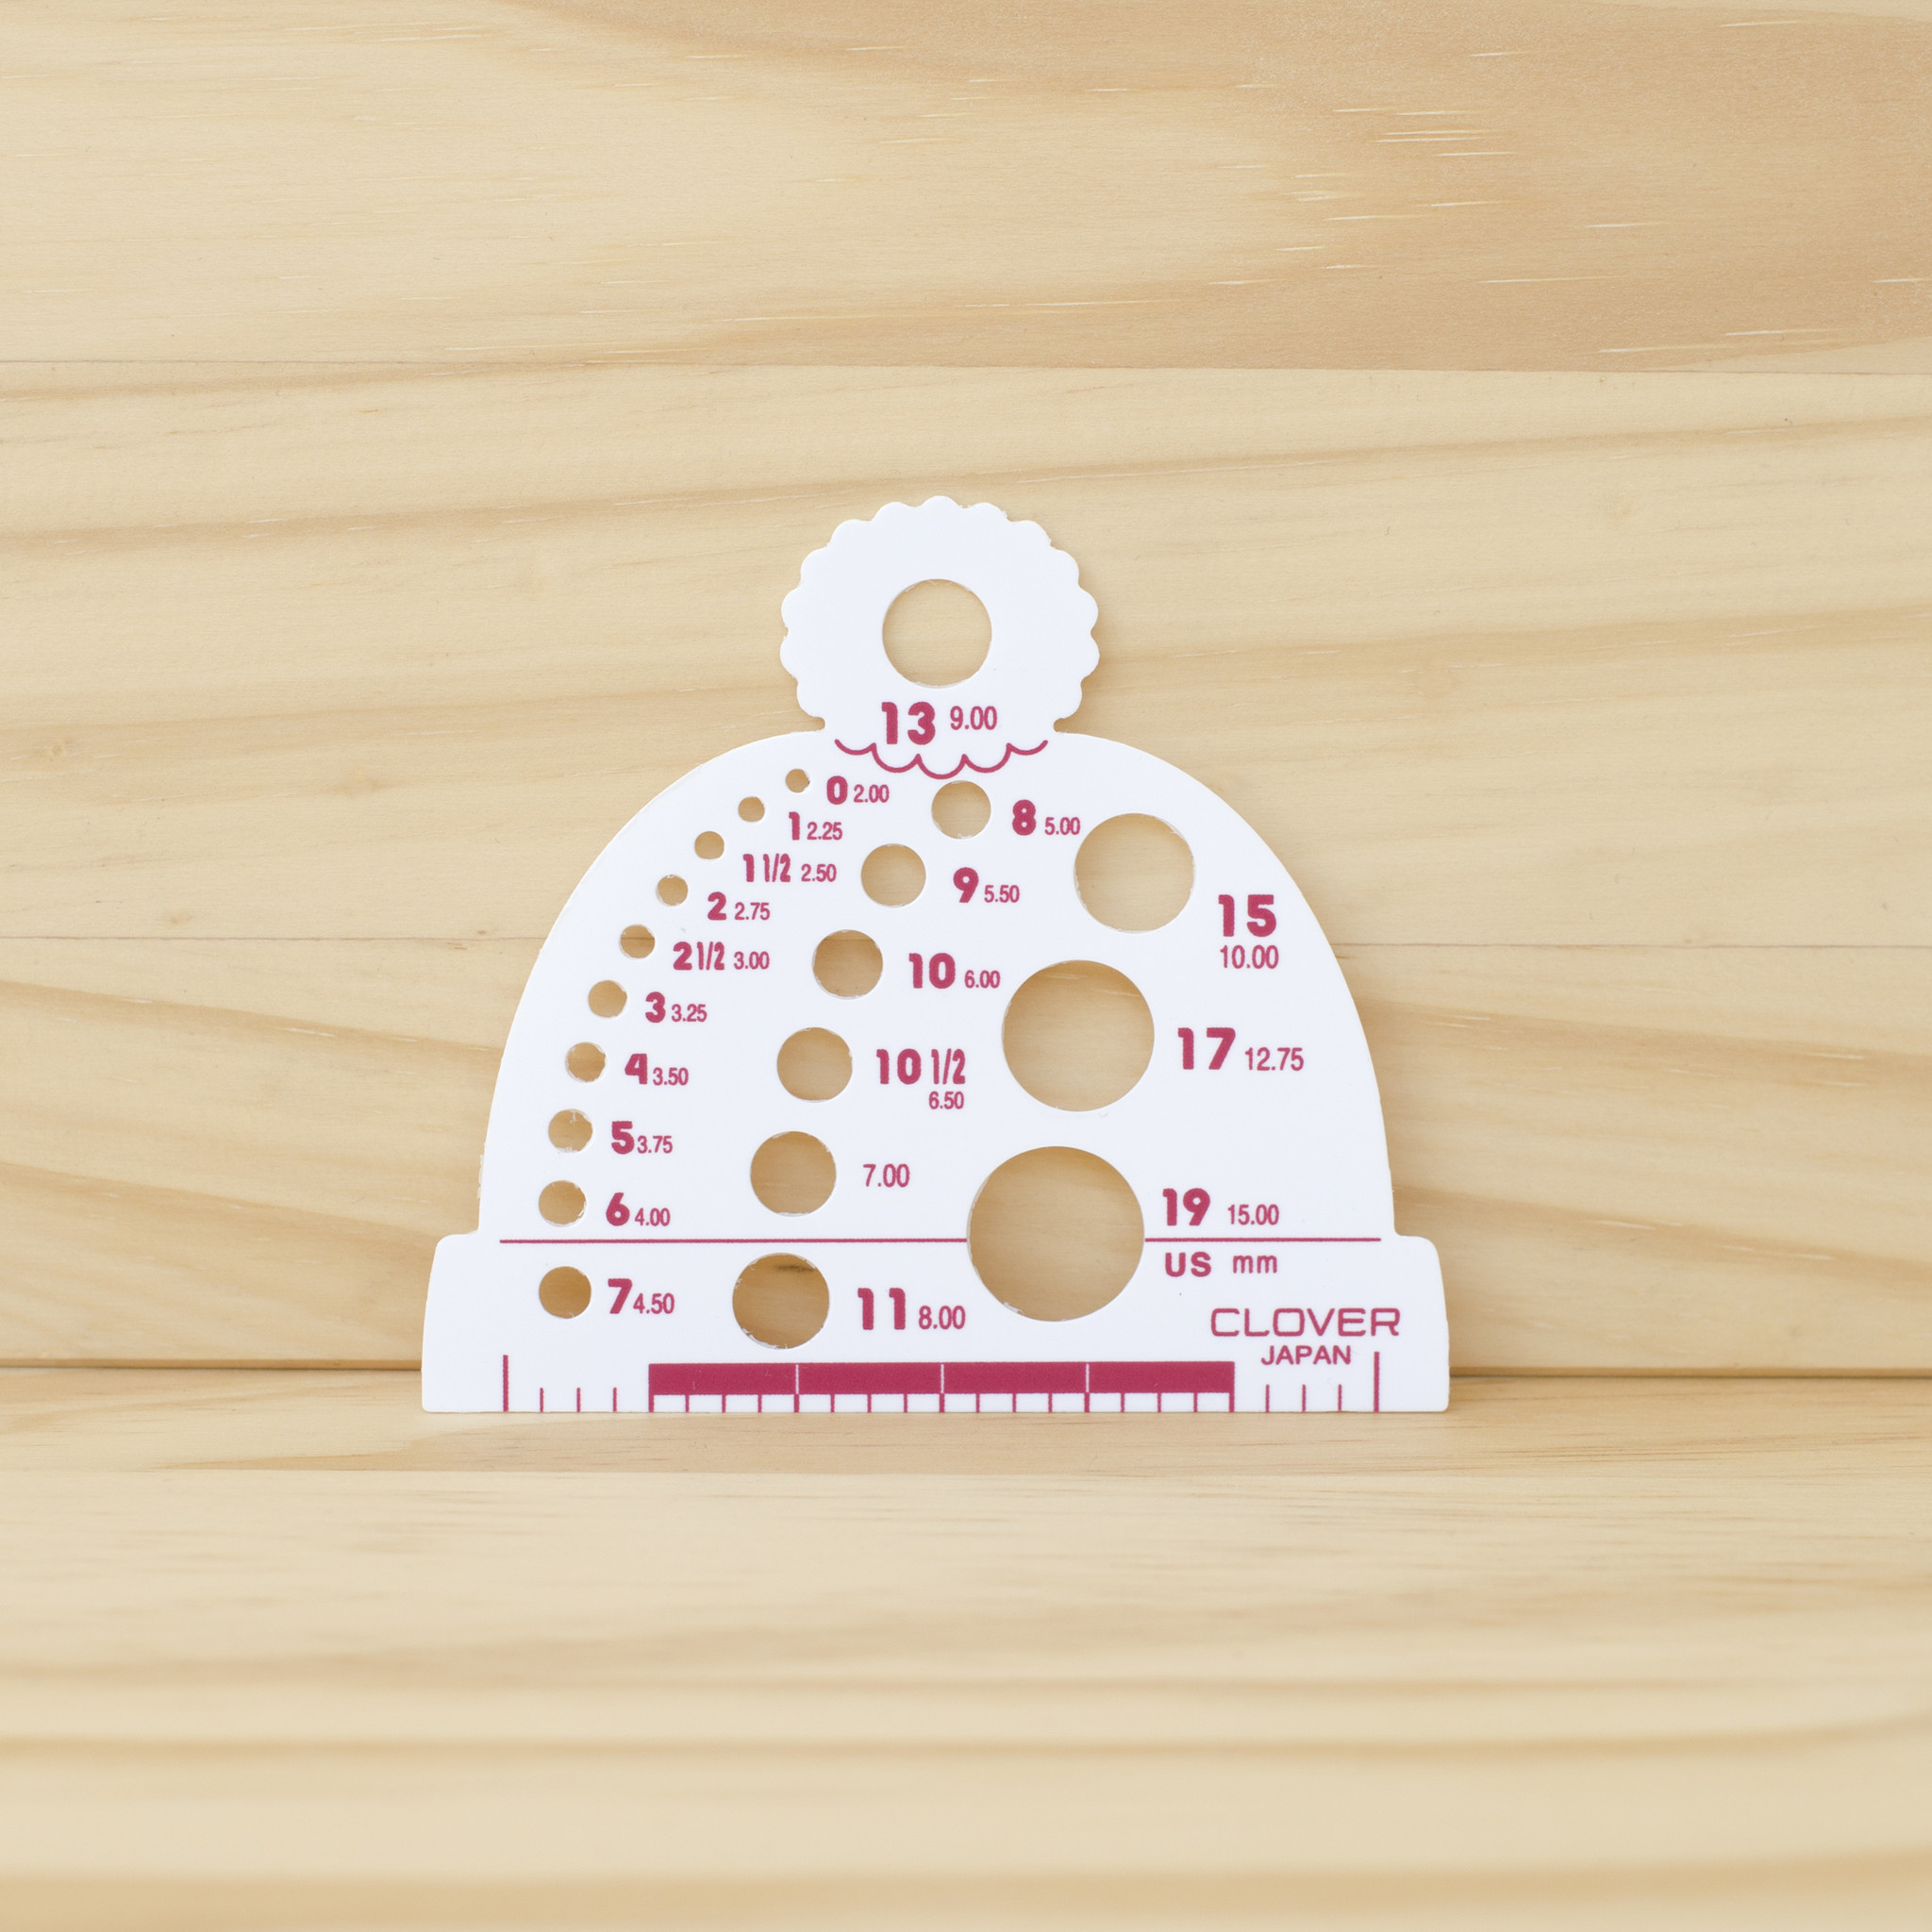 Clover : Knitting Needle Gauge